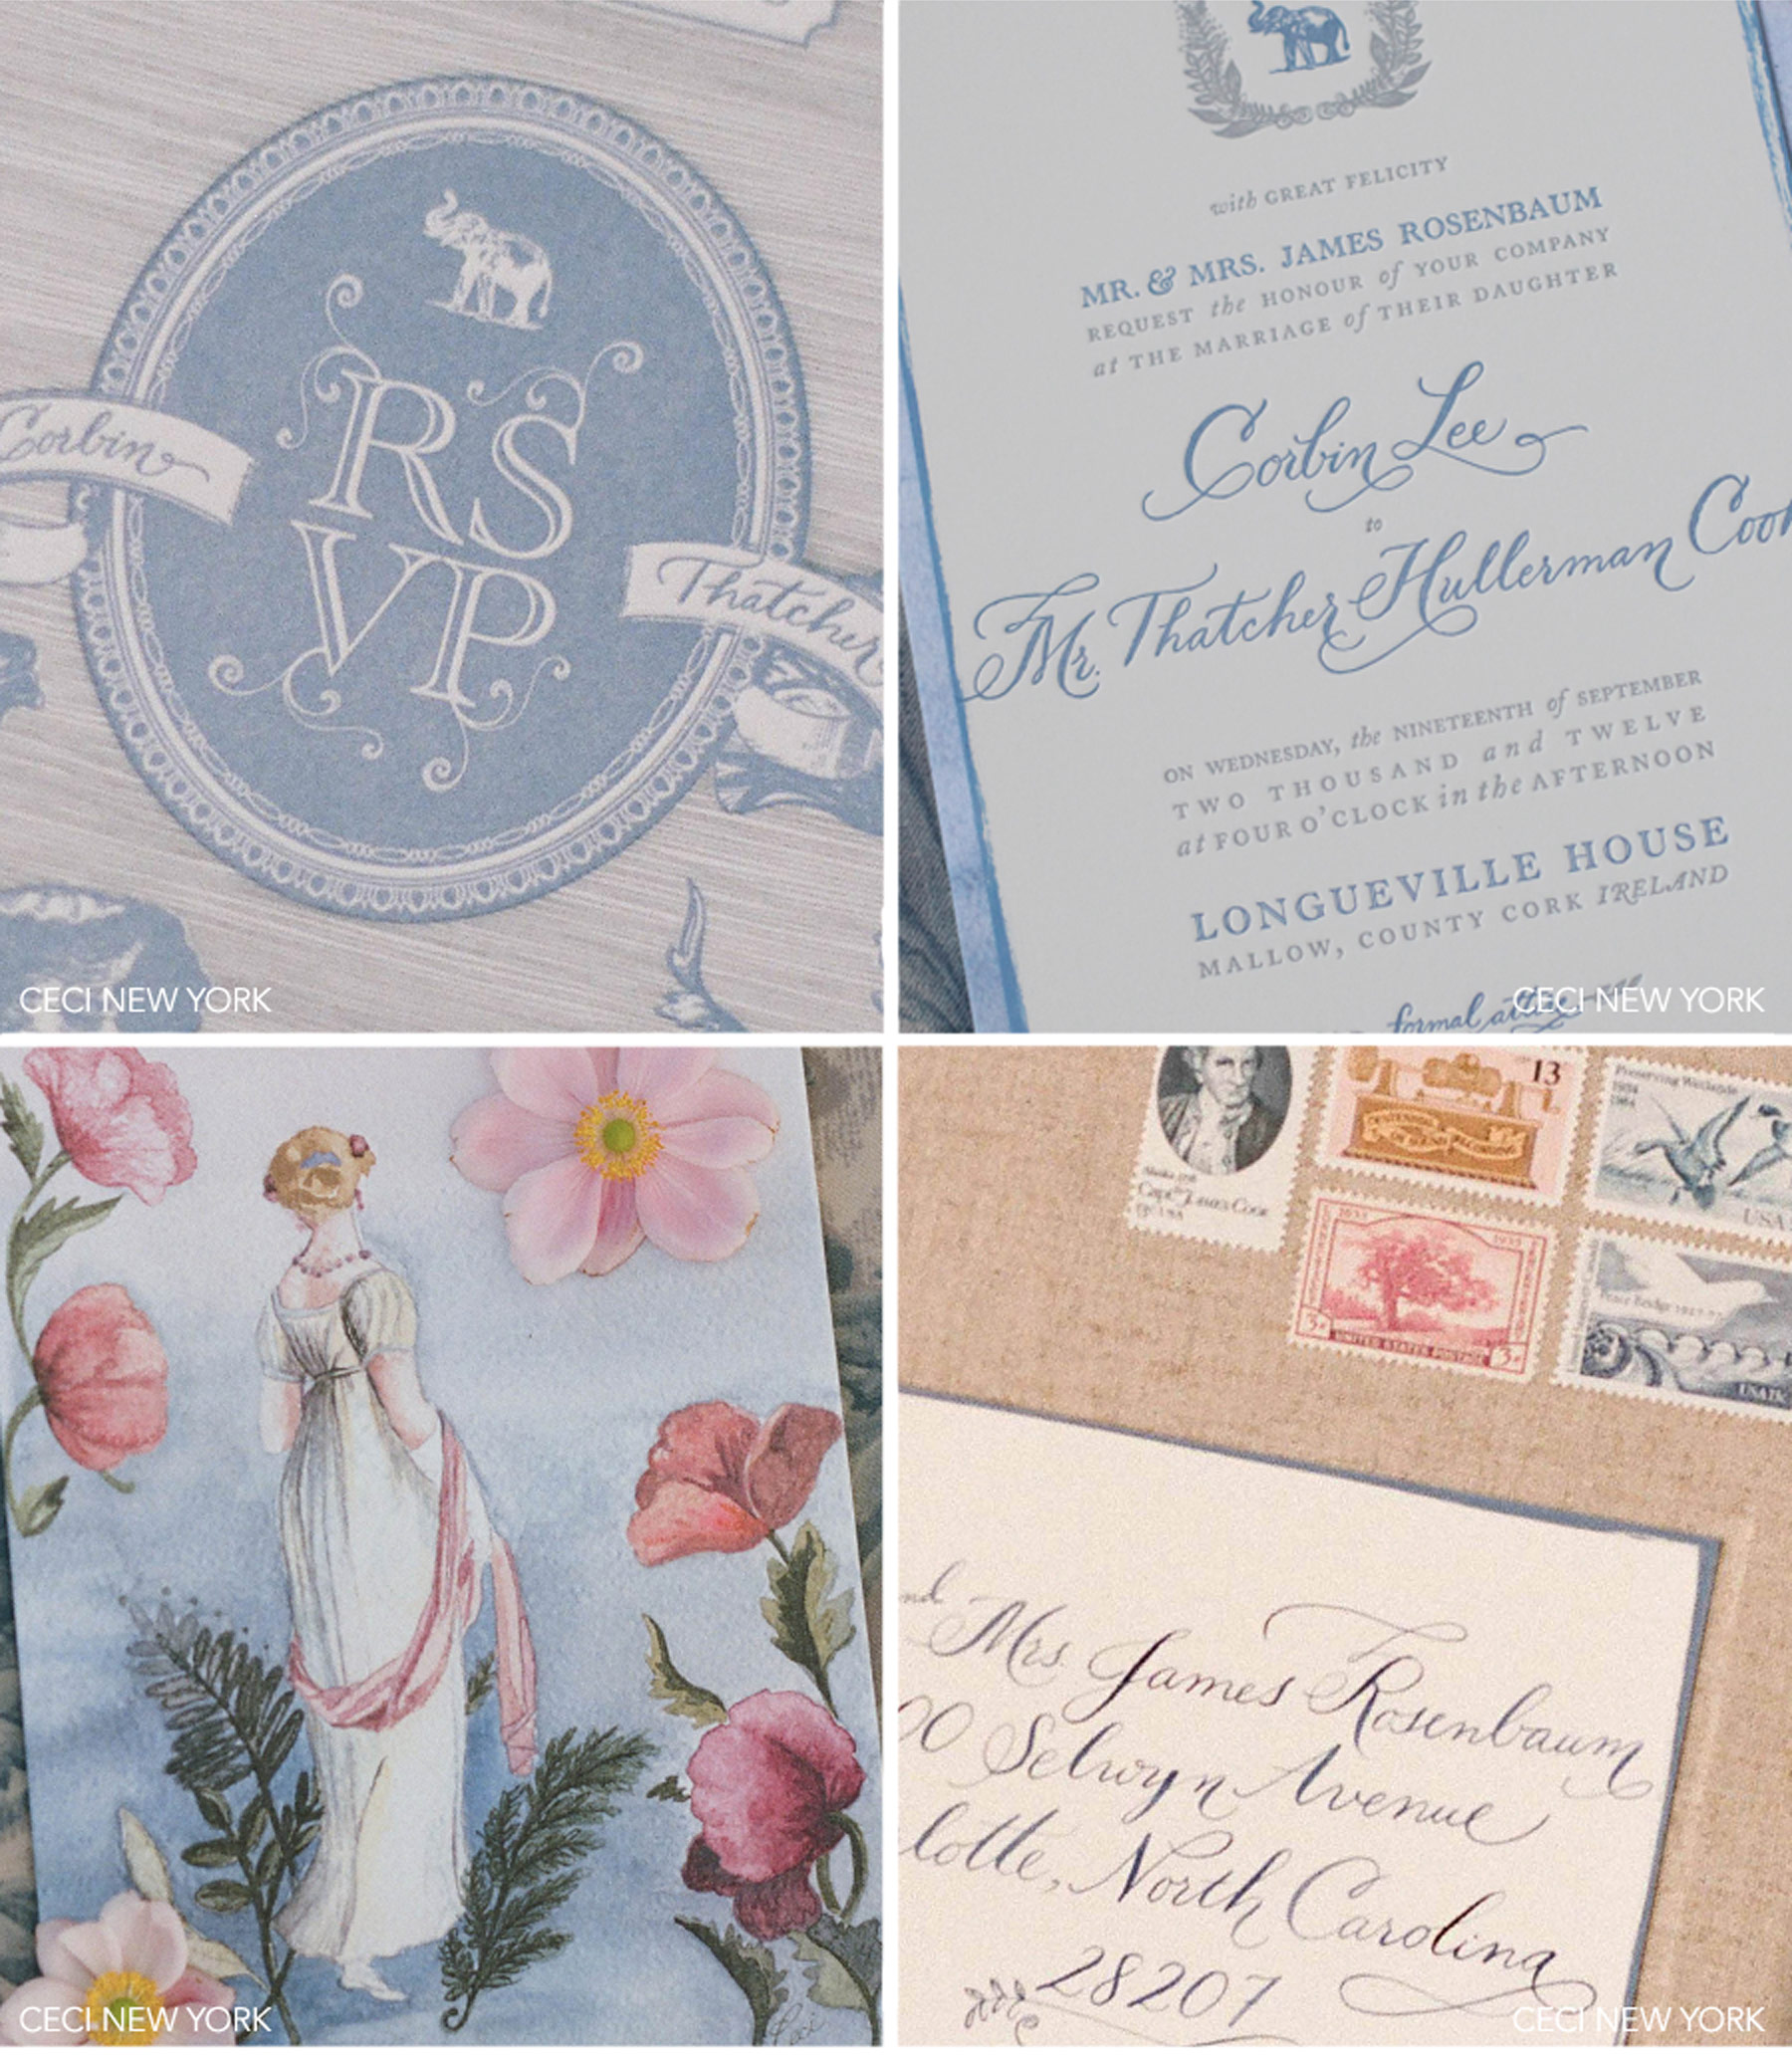 Luxury Wedding Invitations by Ceci New York - Our Muse - Old World-Inspired Wedding - Be inspired by Corbin and Thatcher's romantic, vintage-influenced destination wedding in Ireland - destination wedding, ireland, old world, vintage-influenced, wedding, invitations, emblem, stereograph, letterpress, watercolor, die-cut, ribbon, postcard, pink, blue, light blue